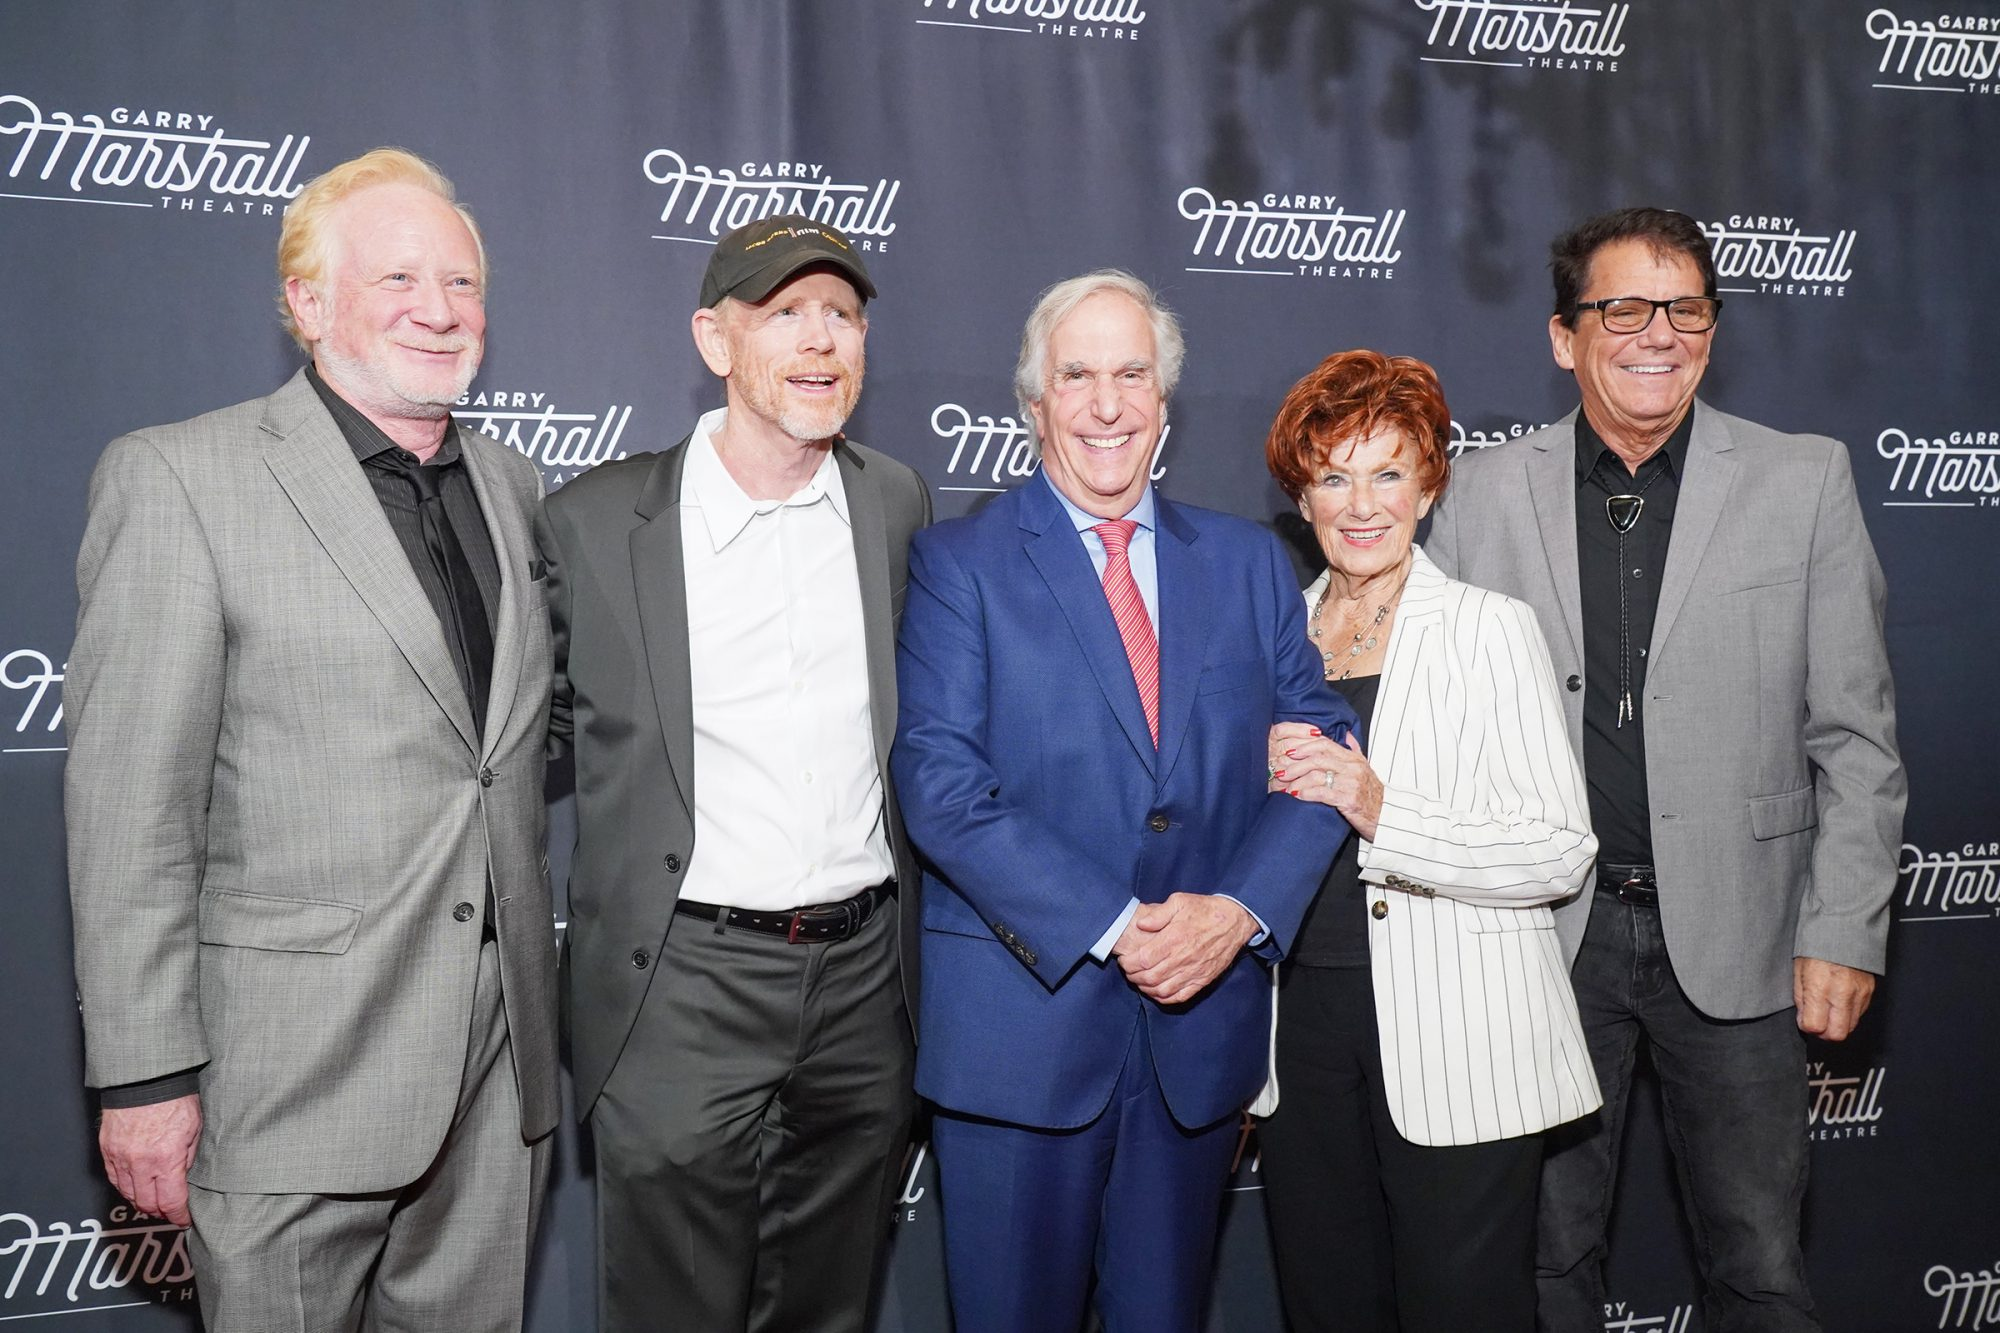 """Don Most, Ron Howard, Henry Winkler, Marion Ross and Anson Williams attend Garry Marshall Theatre's 3rd Annual Founder's Gala Honoring Original """"Happy Days"""" Cast at The Jonathan Club on November 13, 2019 in Los Angeles"""